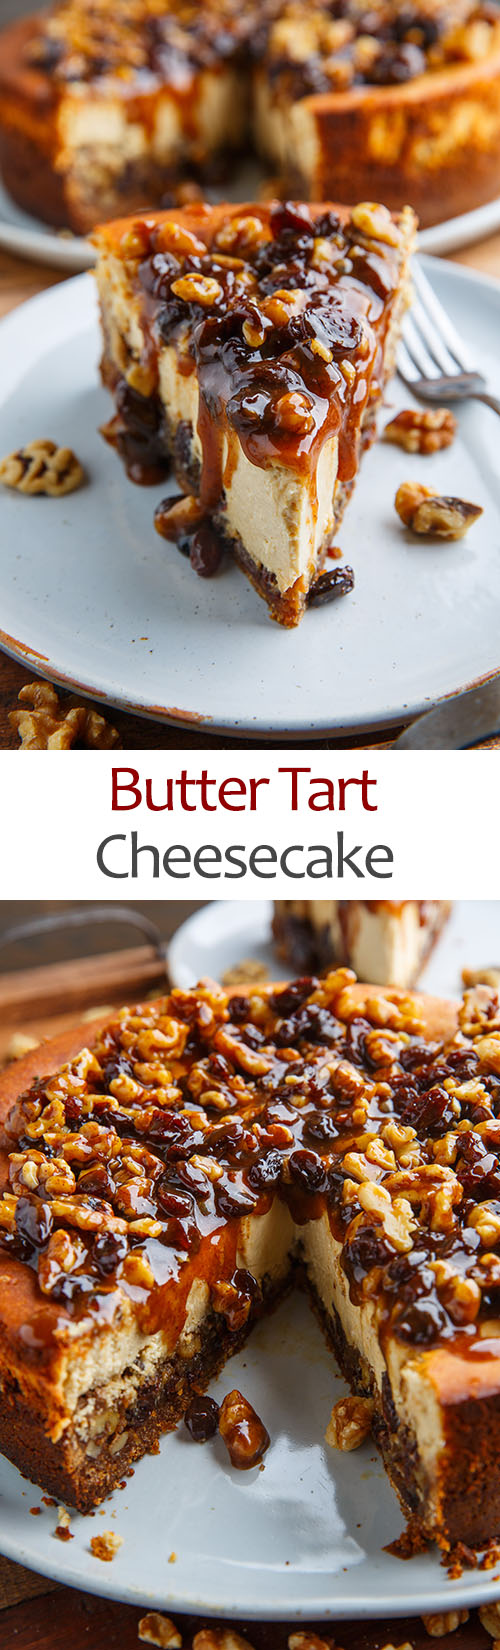 Butter Tart Cheesecake